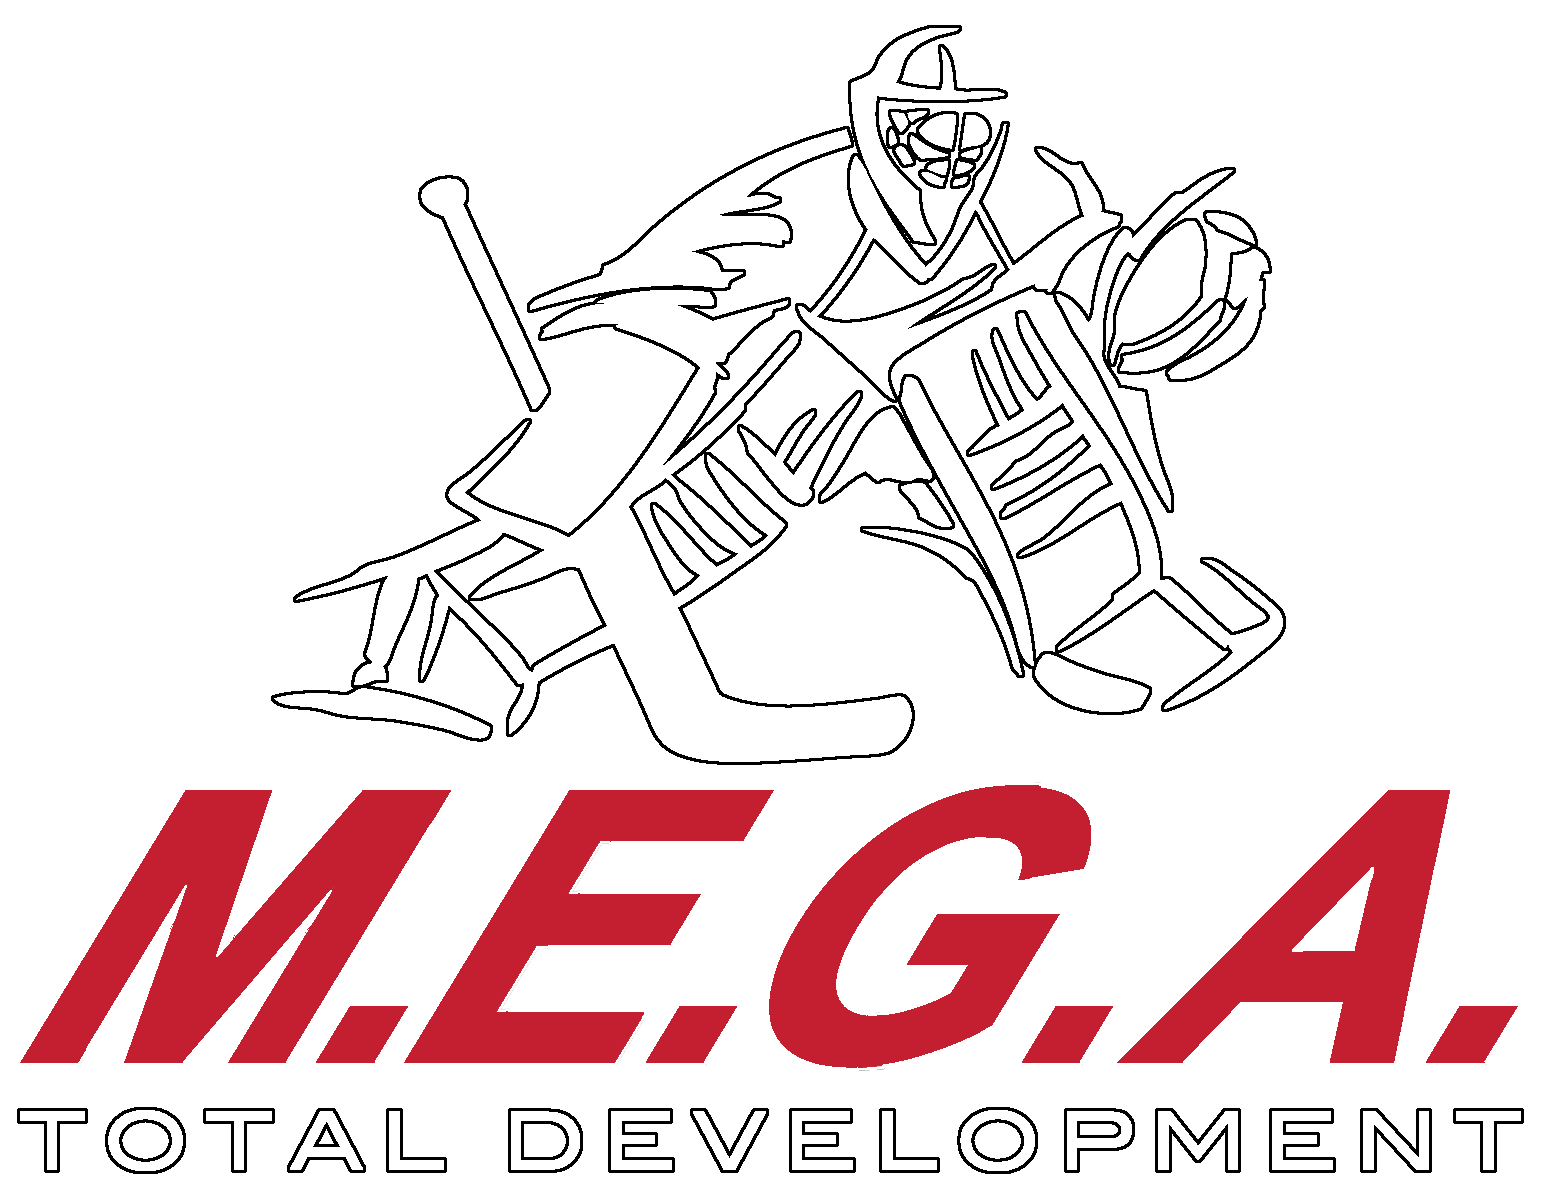 MEGA-LOGO-ALL-WHITE-MEGA-RED-BLACK-OUTLINE